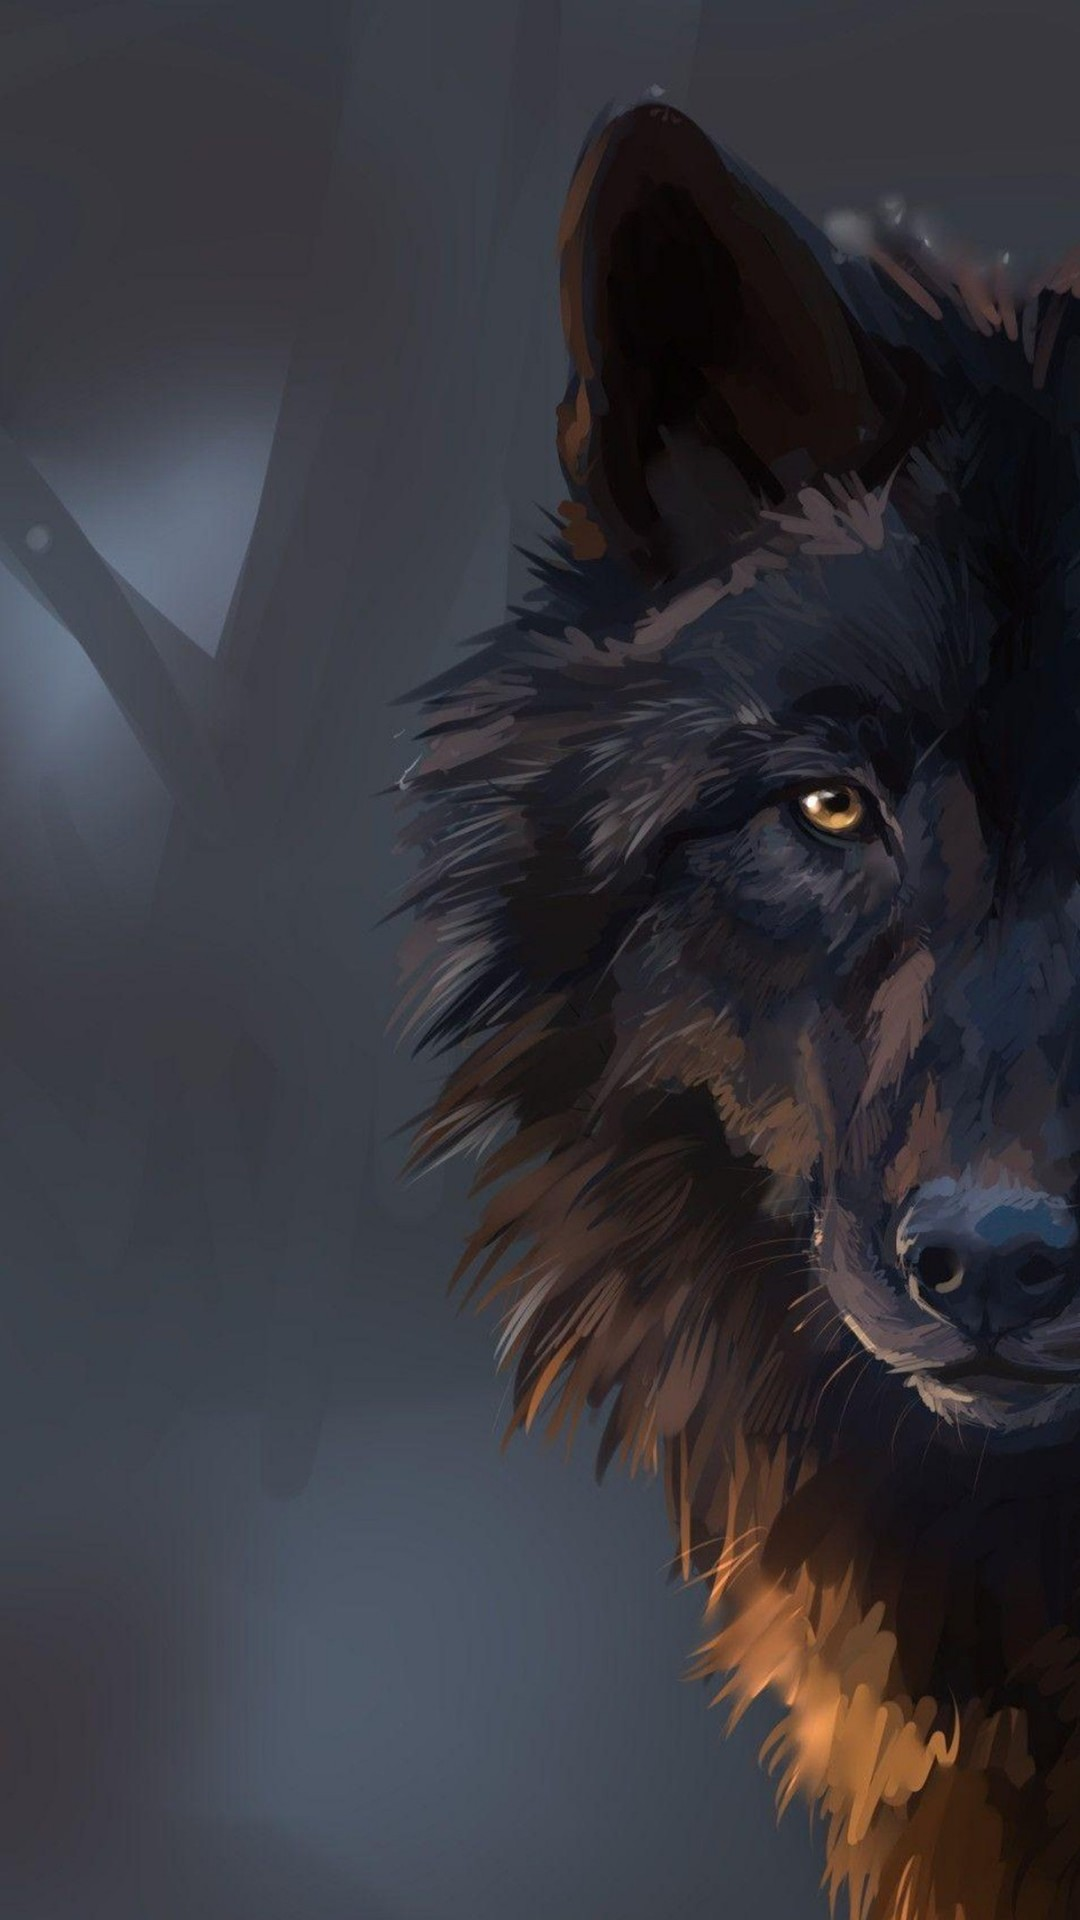 Wolf Images Hd Posted By Zoey Cunningham